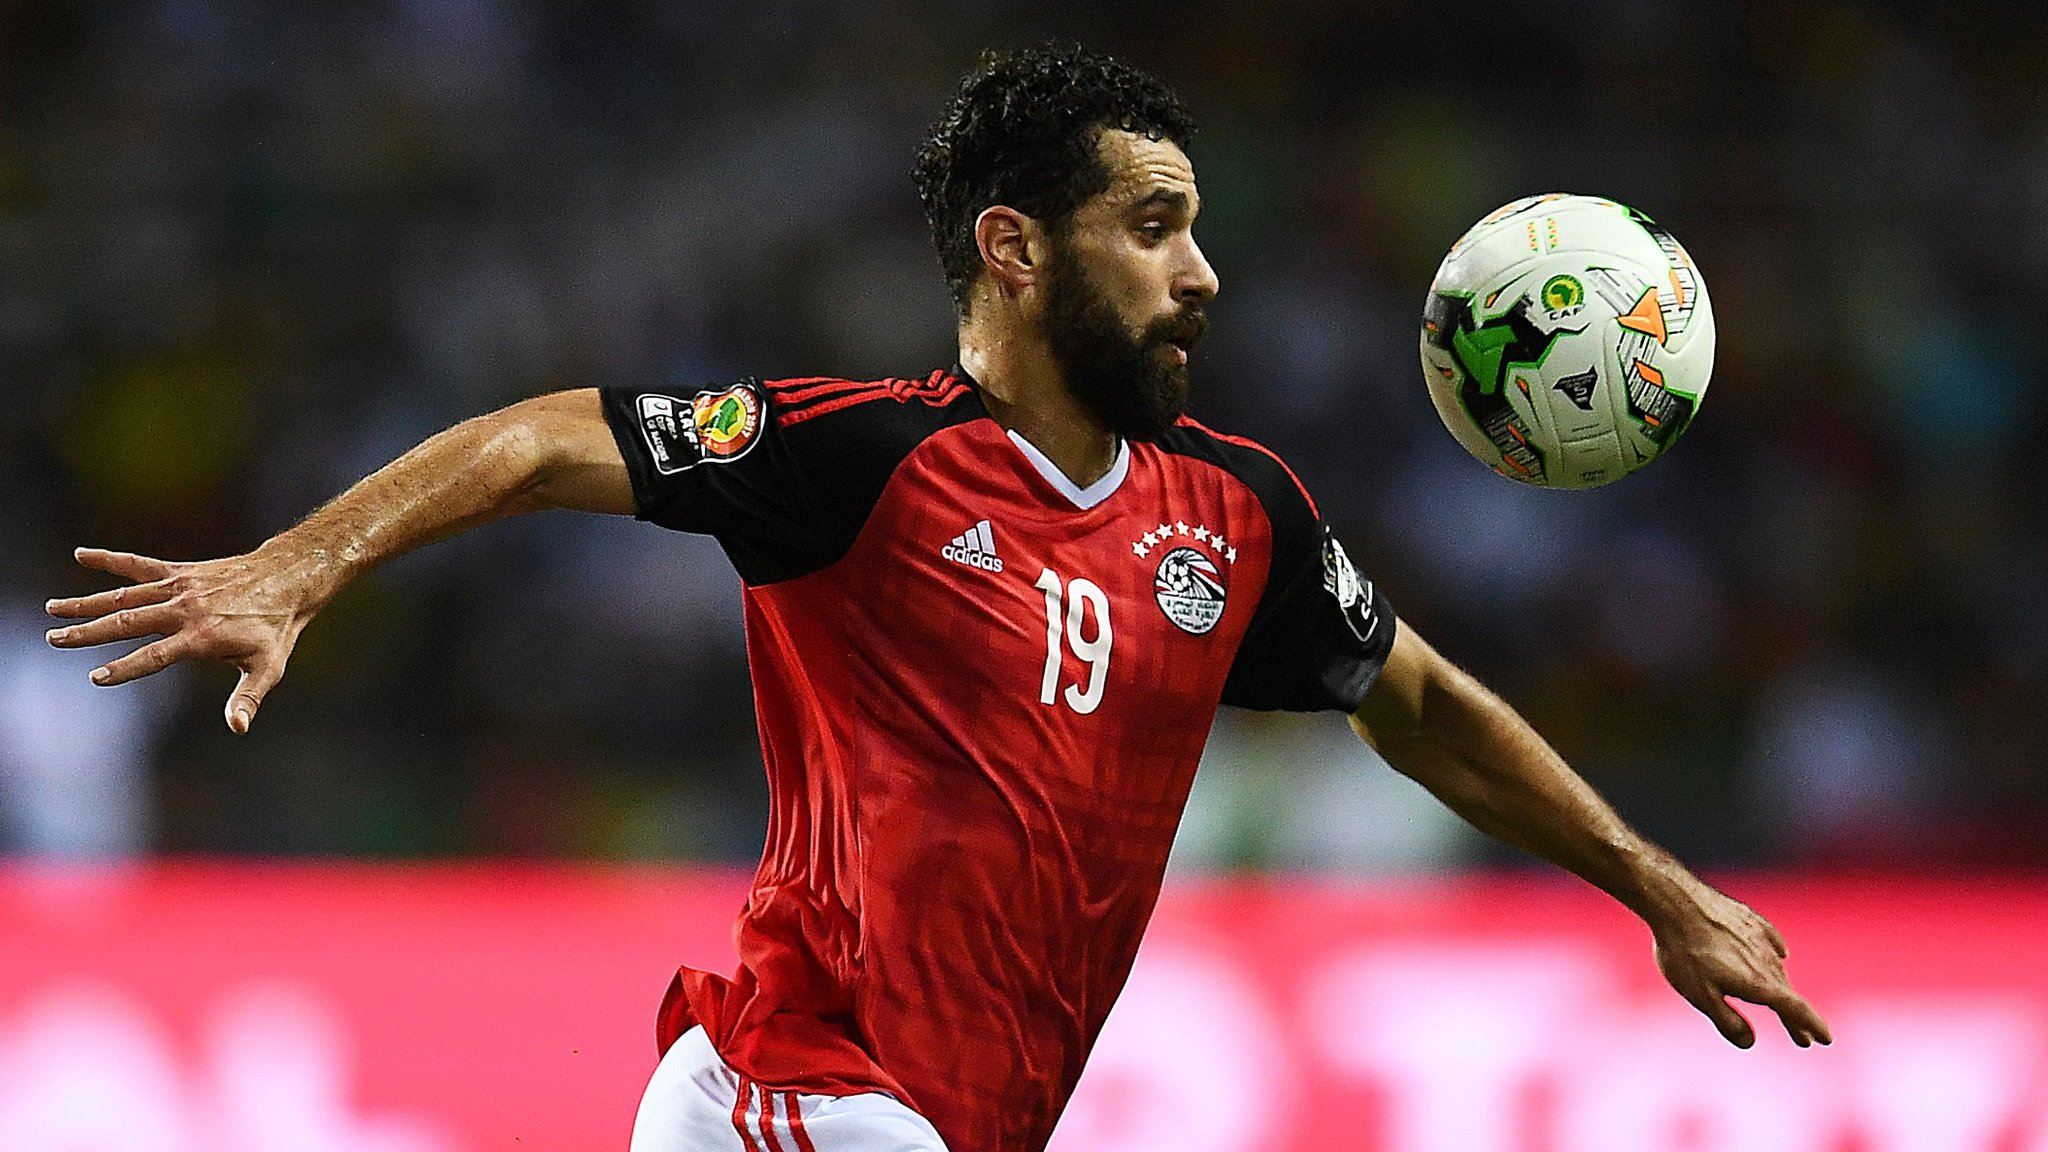 Popular Egypt World Cup 2018 - _98103715_633929270  Image_41211 .jpg